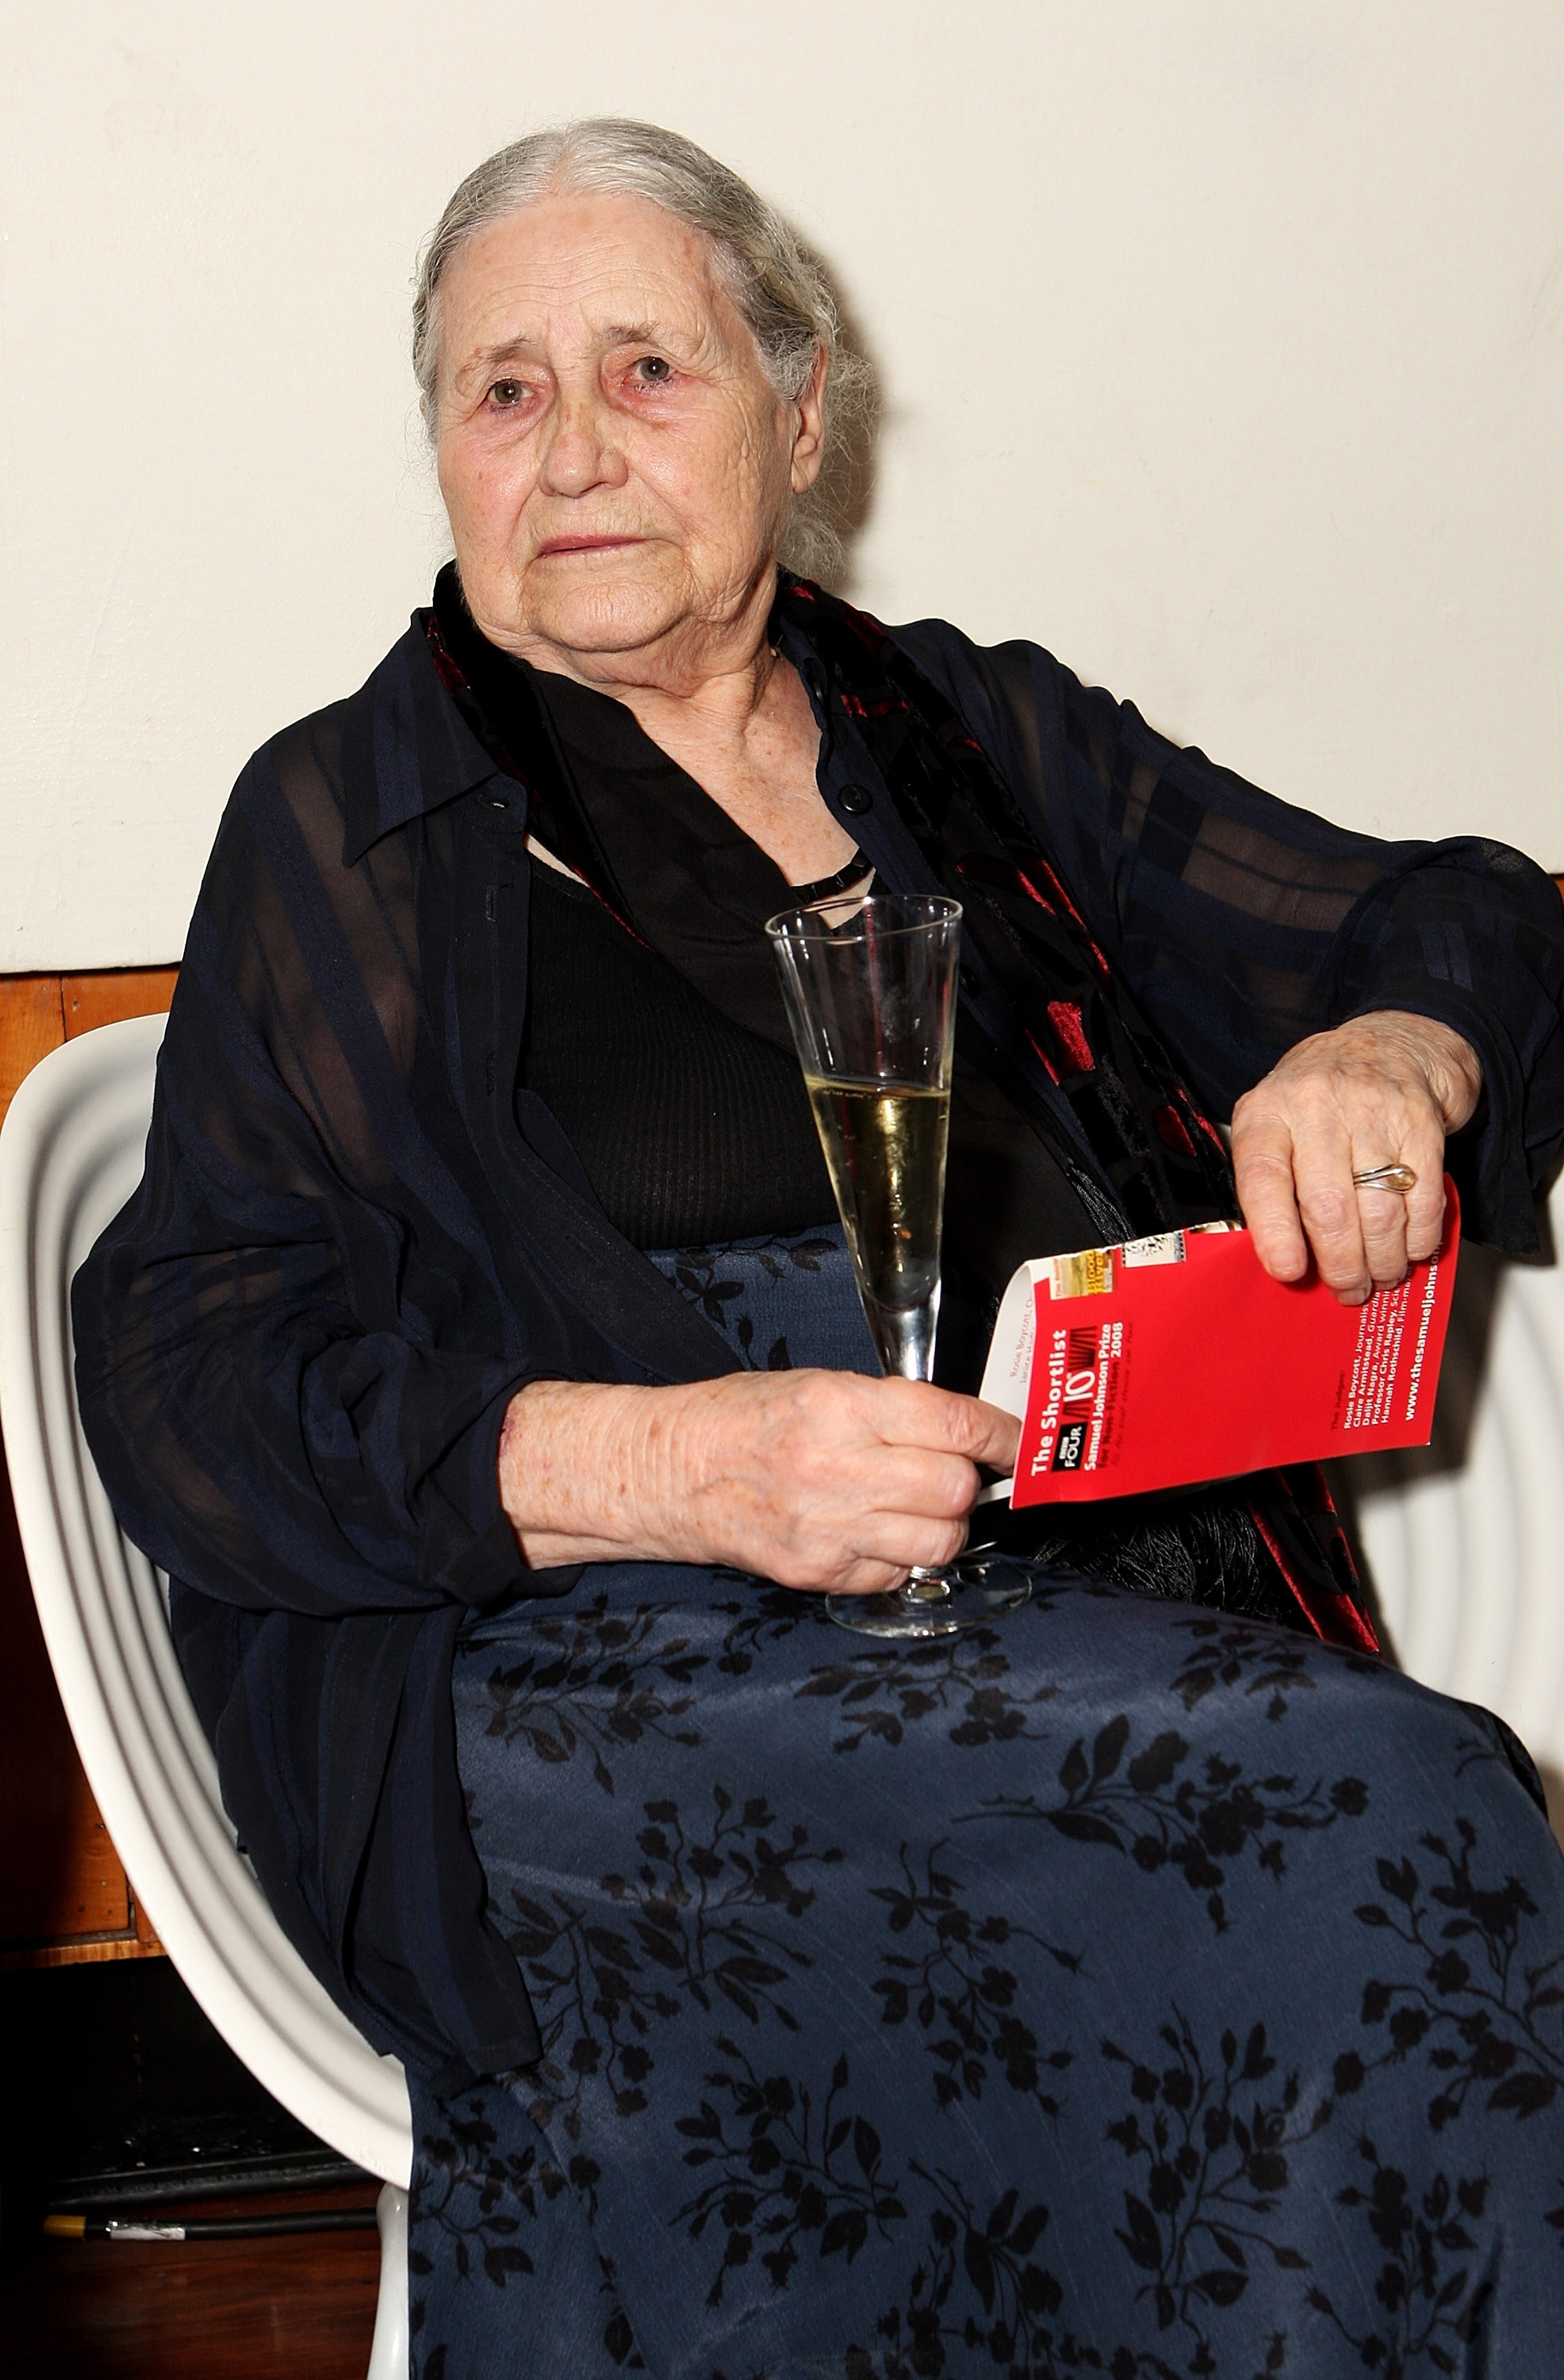 FILE – NOVEMBER 17, 2013: It was reported that author Doris Lessing winner of the Nobel Prize in Literature died at 94 November 17, 2013. LONDON – JULY 15:  Author Doris Lessing attends the BBC Four Samuel Johnson Prize For Non-Fiction award ceremony at the Southbank Centre on July 15, 2008 in London, England.  (Photo by Rosie Greenway/Getty Images)